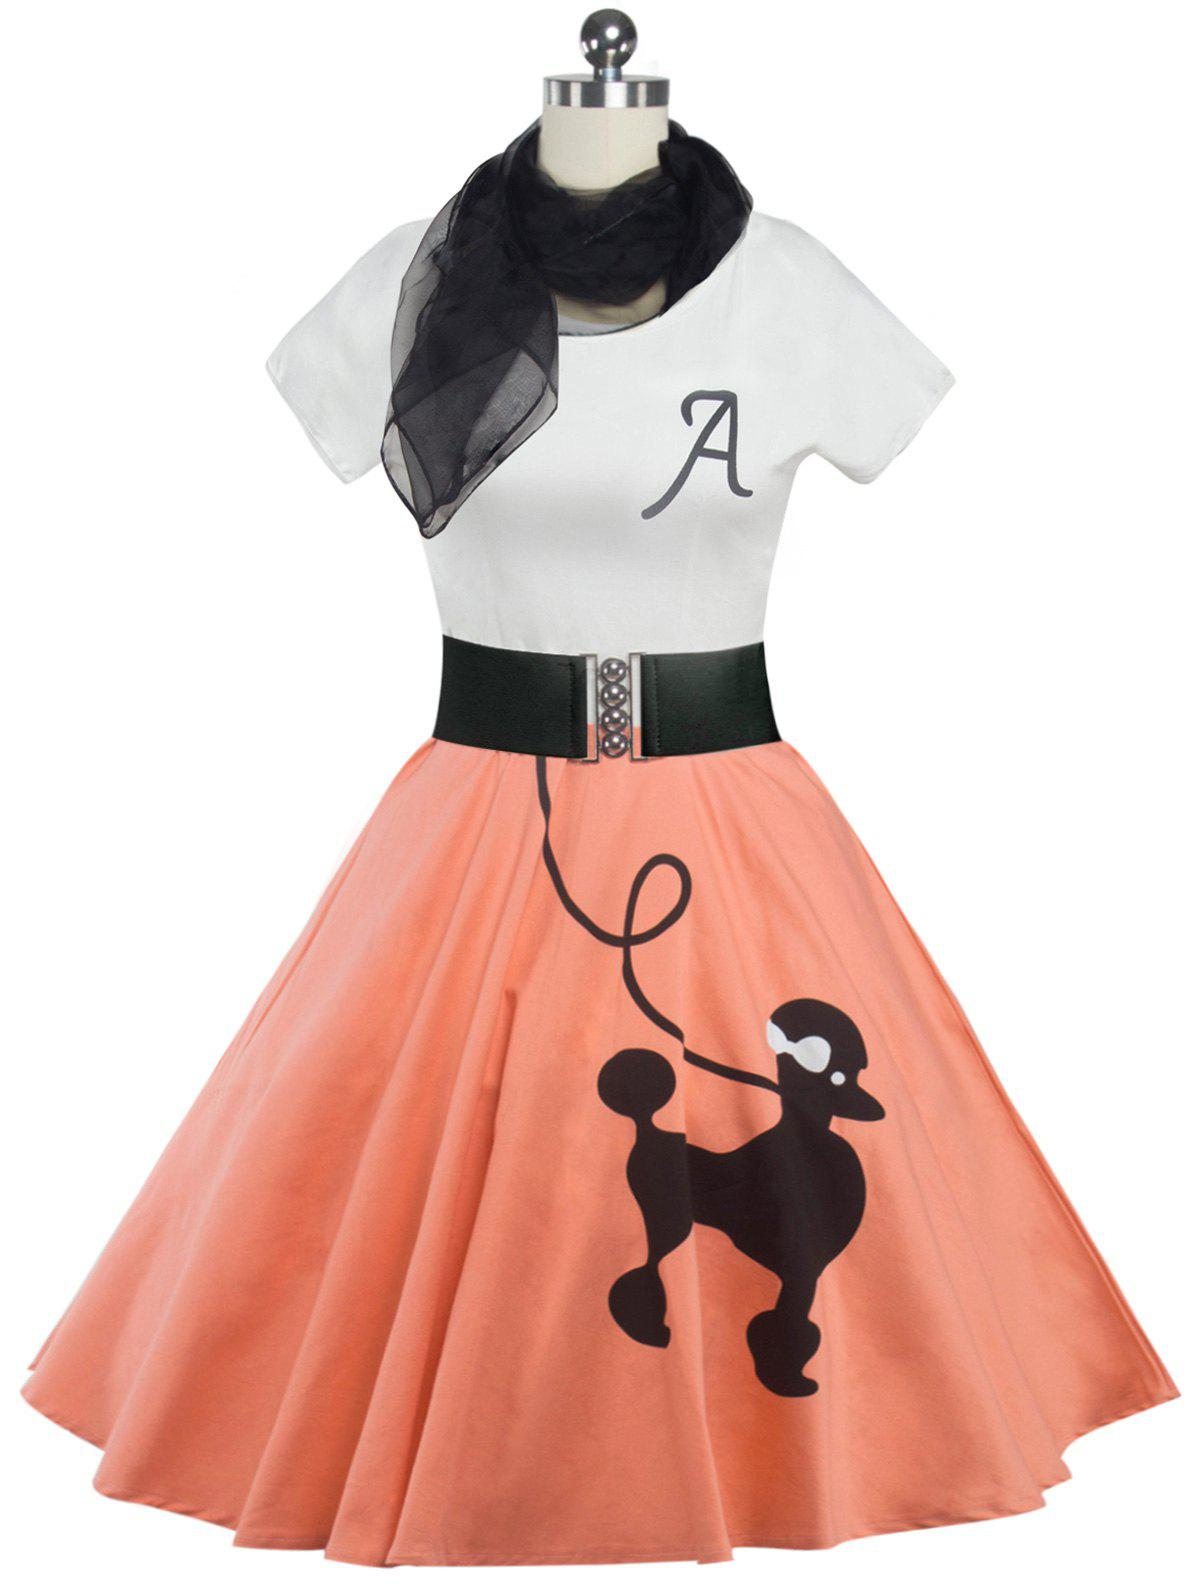 Retro Poodle Print High Waist Skater Dress - ORANGEPINK M